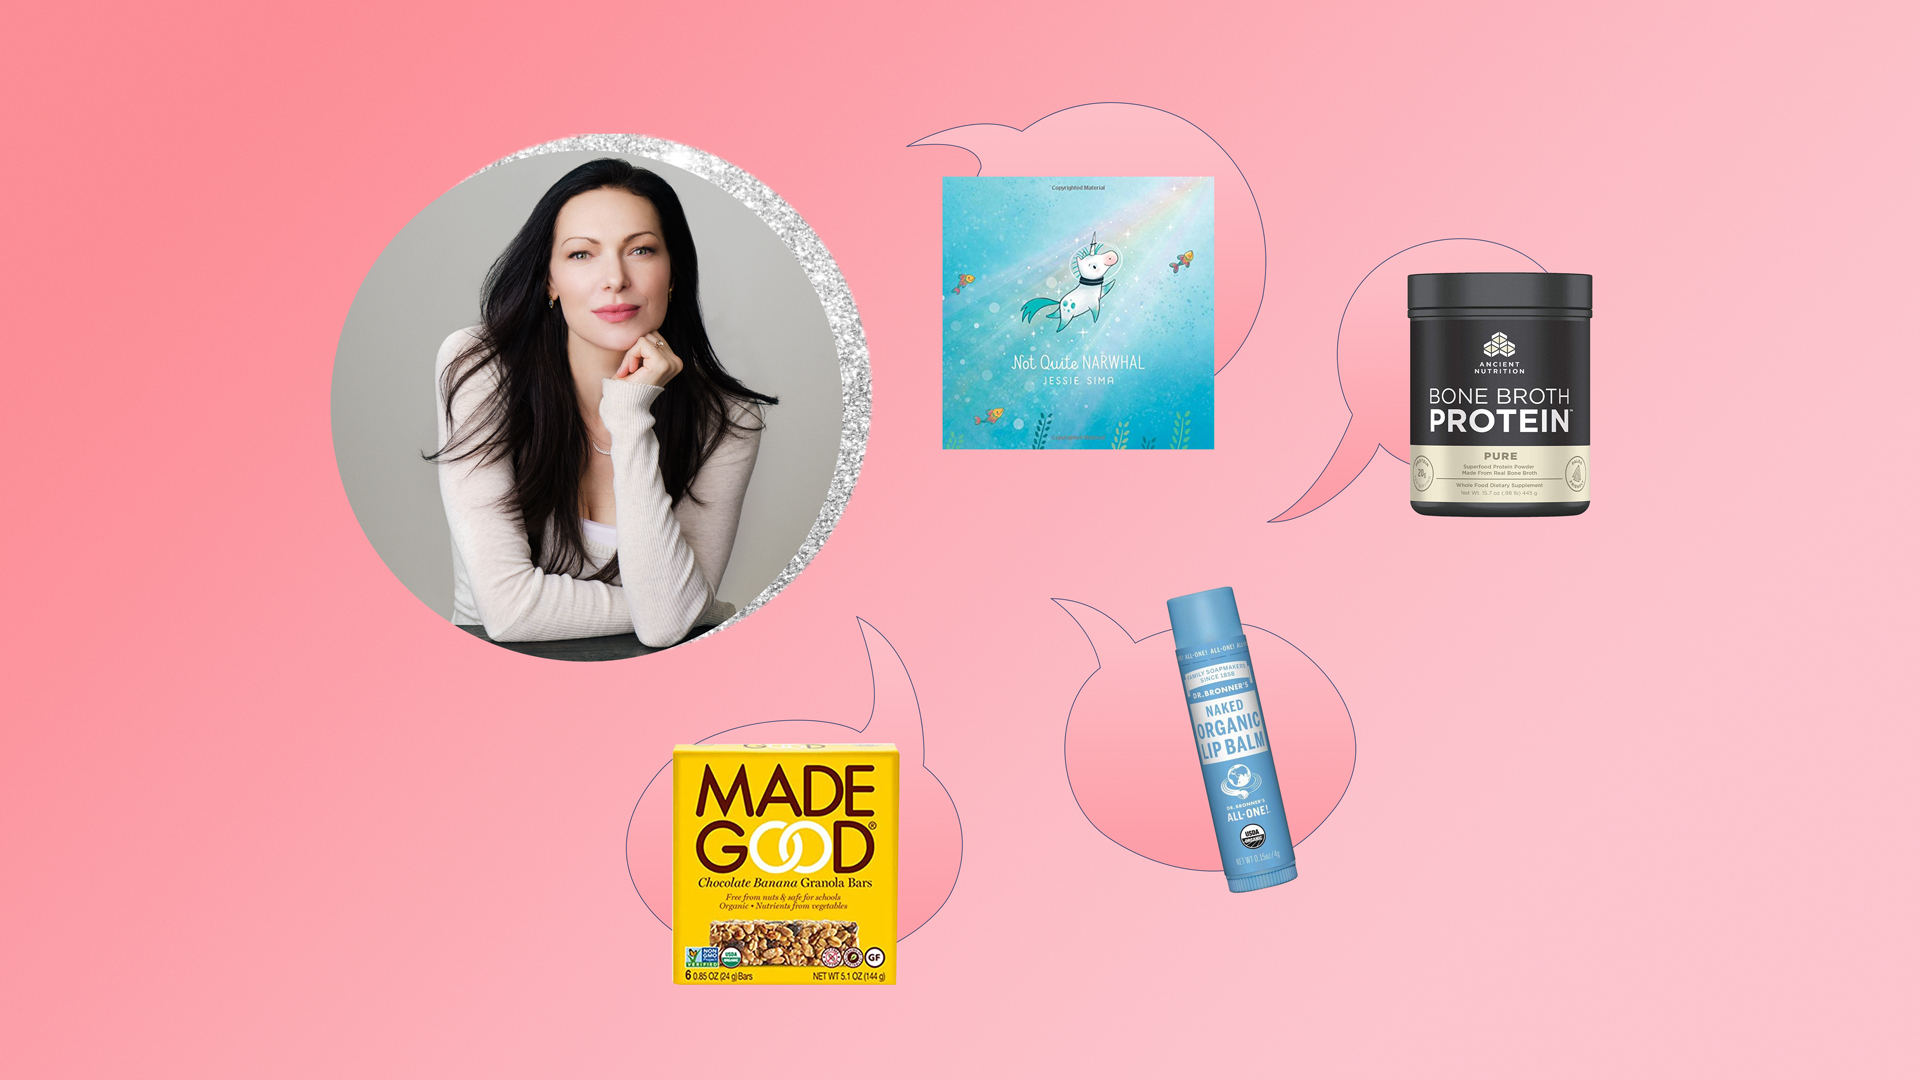 Laura Prepon S Top Product Picks For Mom Life With Ella Newborn Images, Photos, Reviews